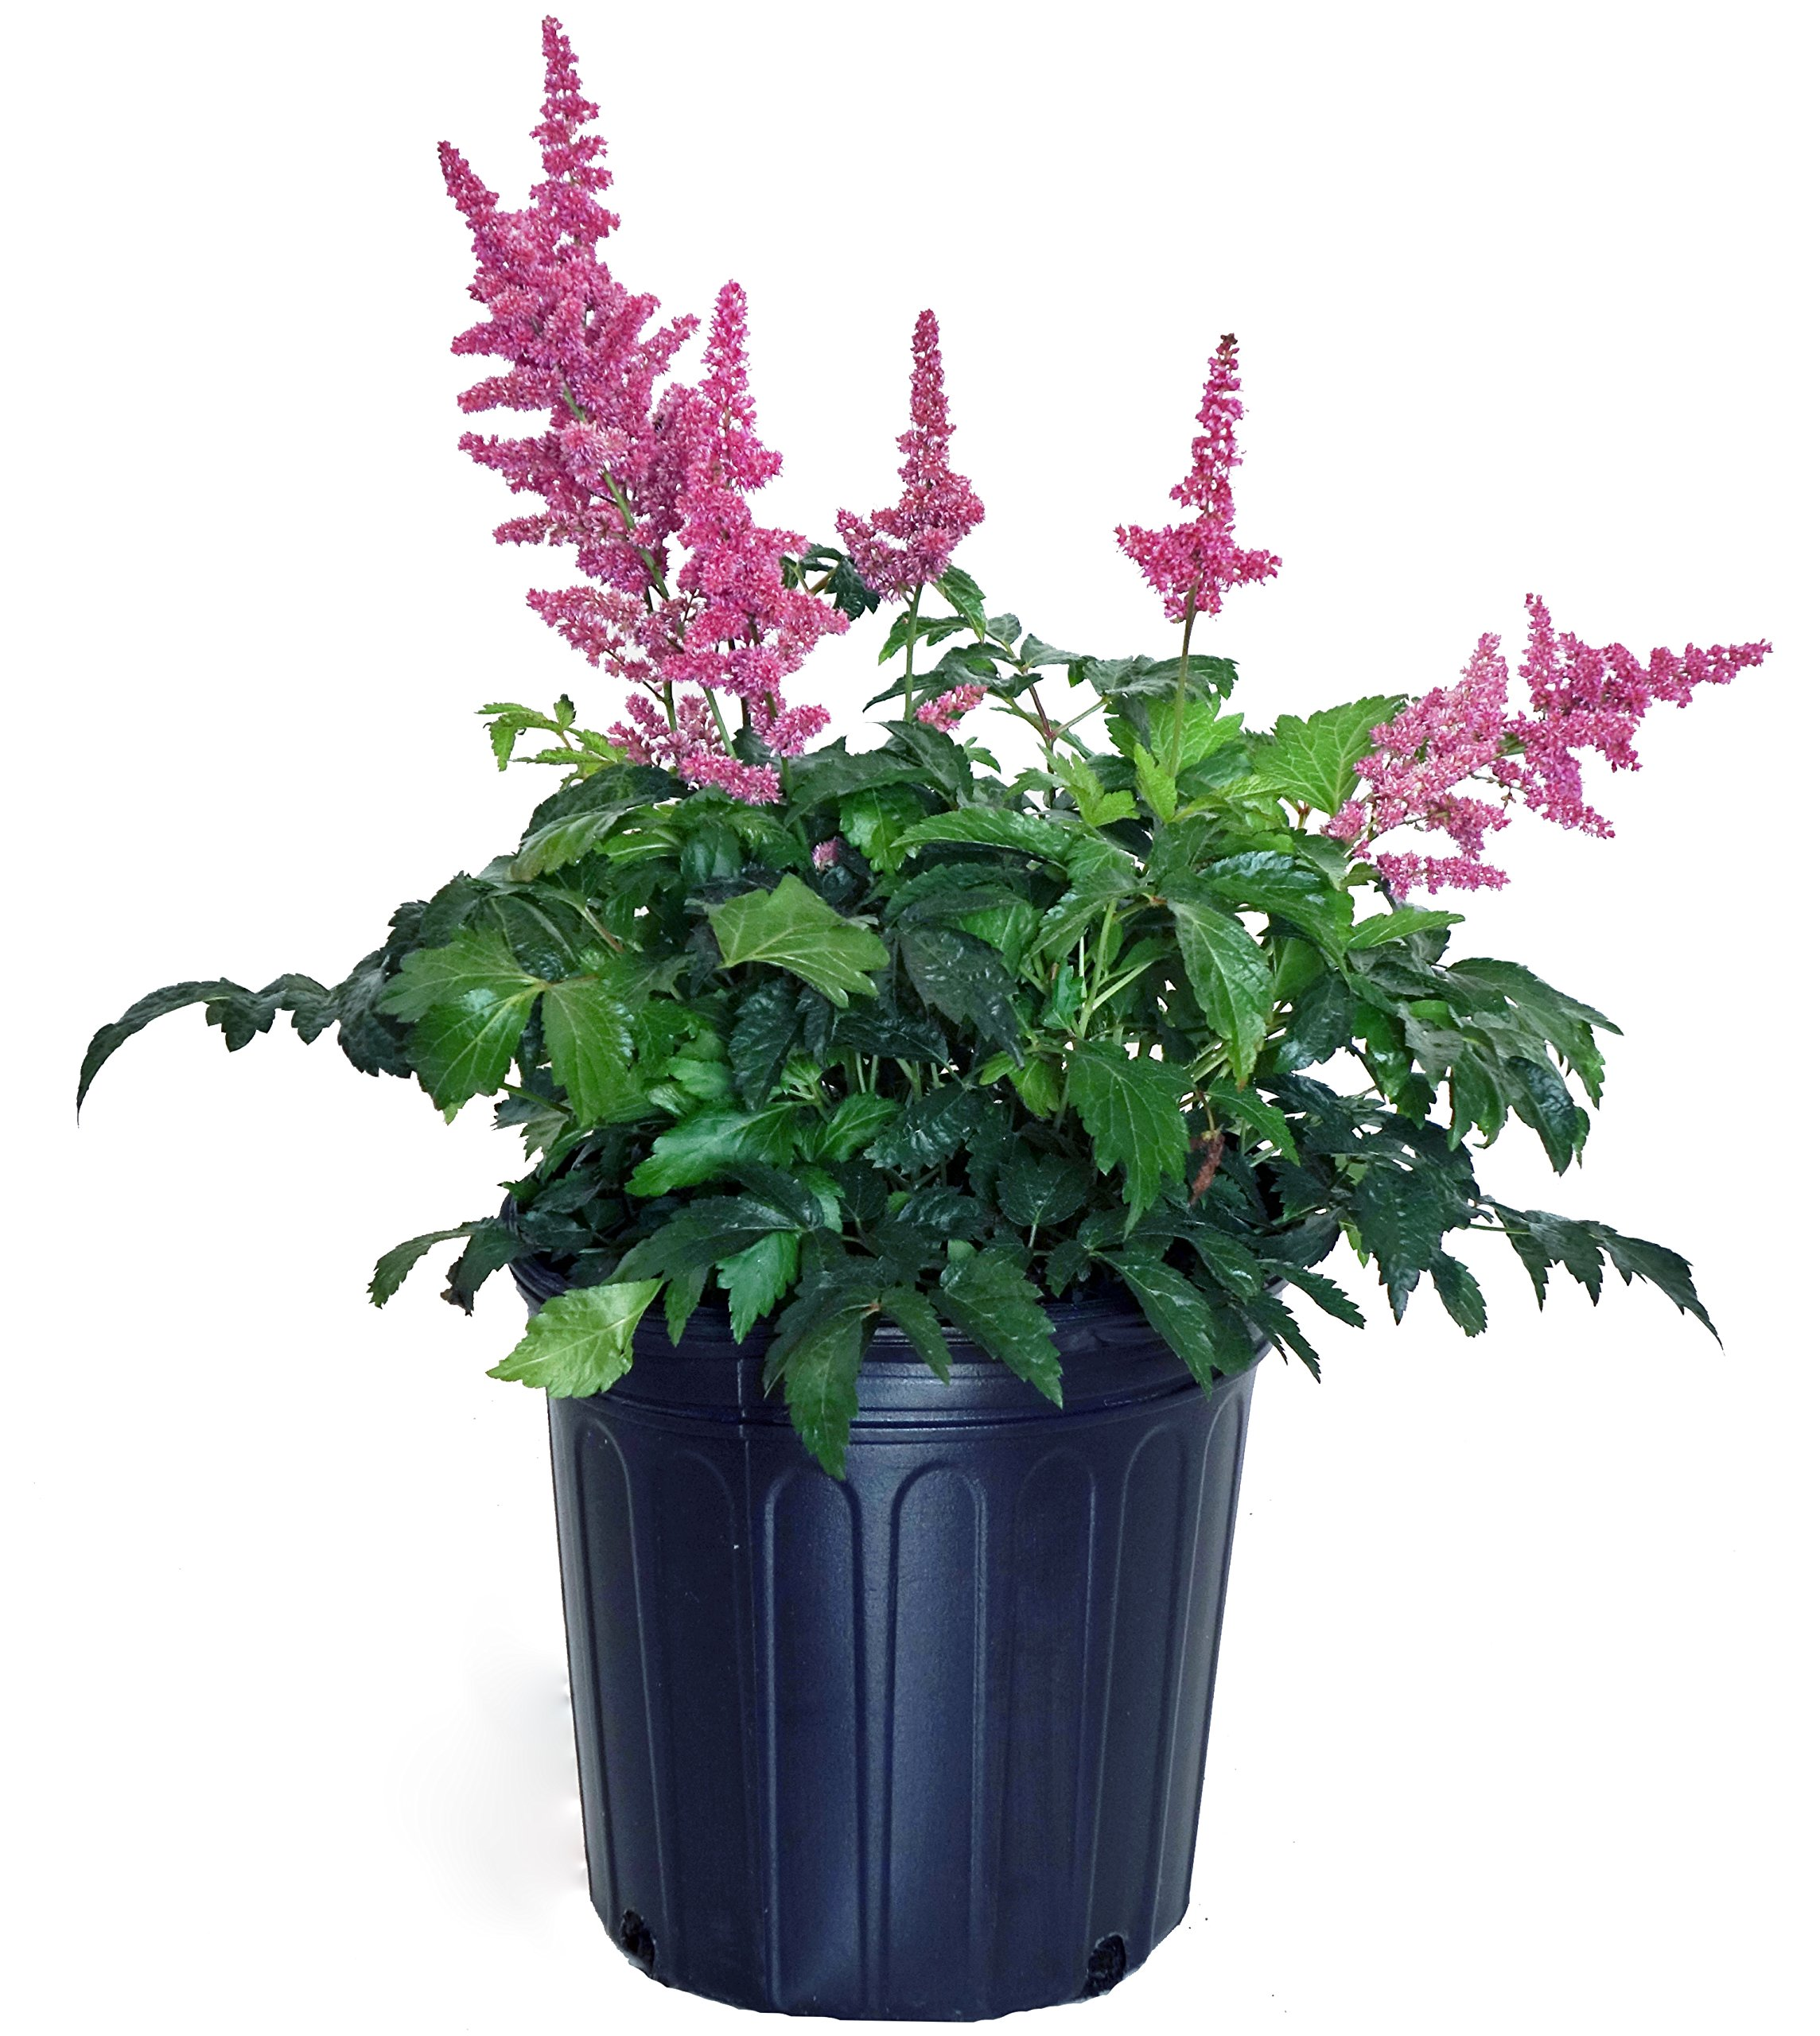 Astilbe arendsii 'Fanal' (False Spirea) Perennial, deep red Flowers, 2 - Size Container